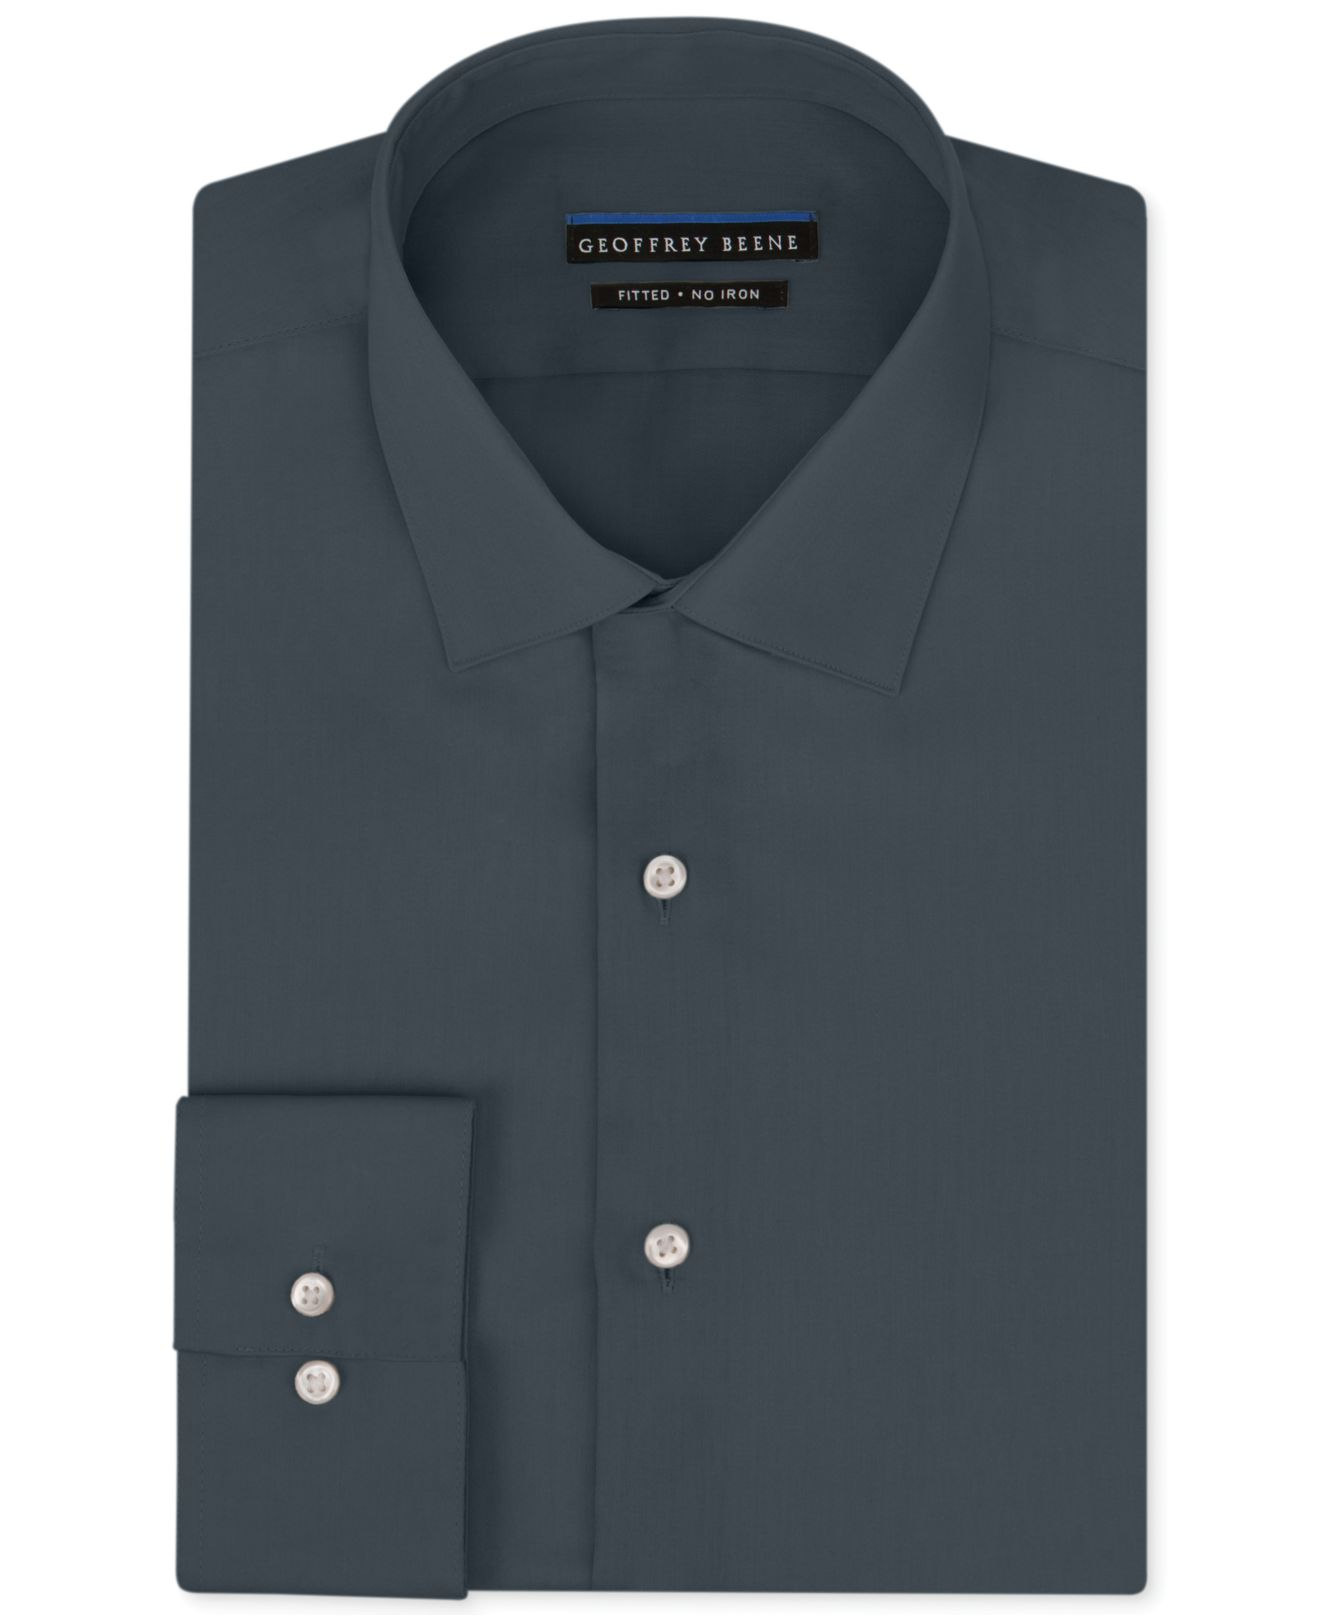 Geoffrey beene men 39 s fitted no iron stretch sateen dress for No iron shirts mens